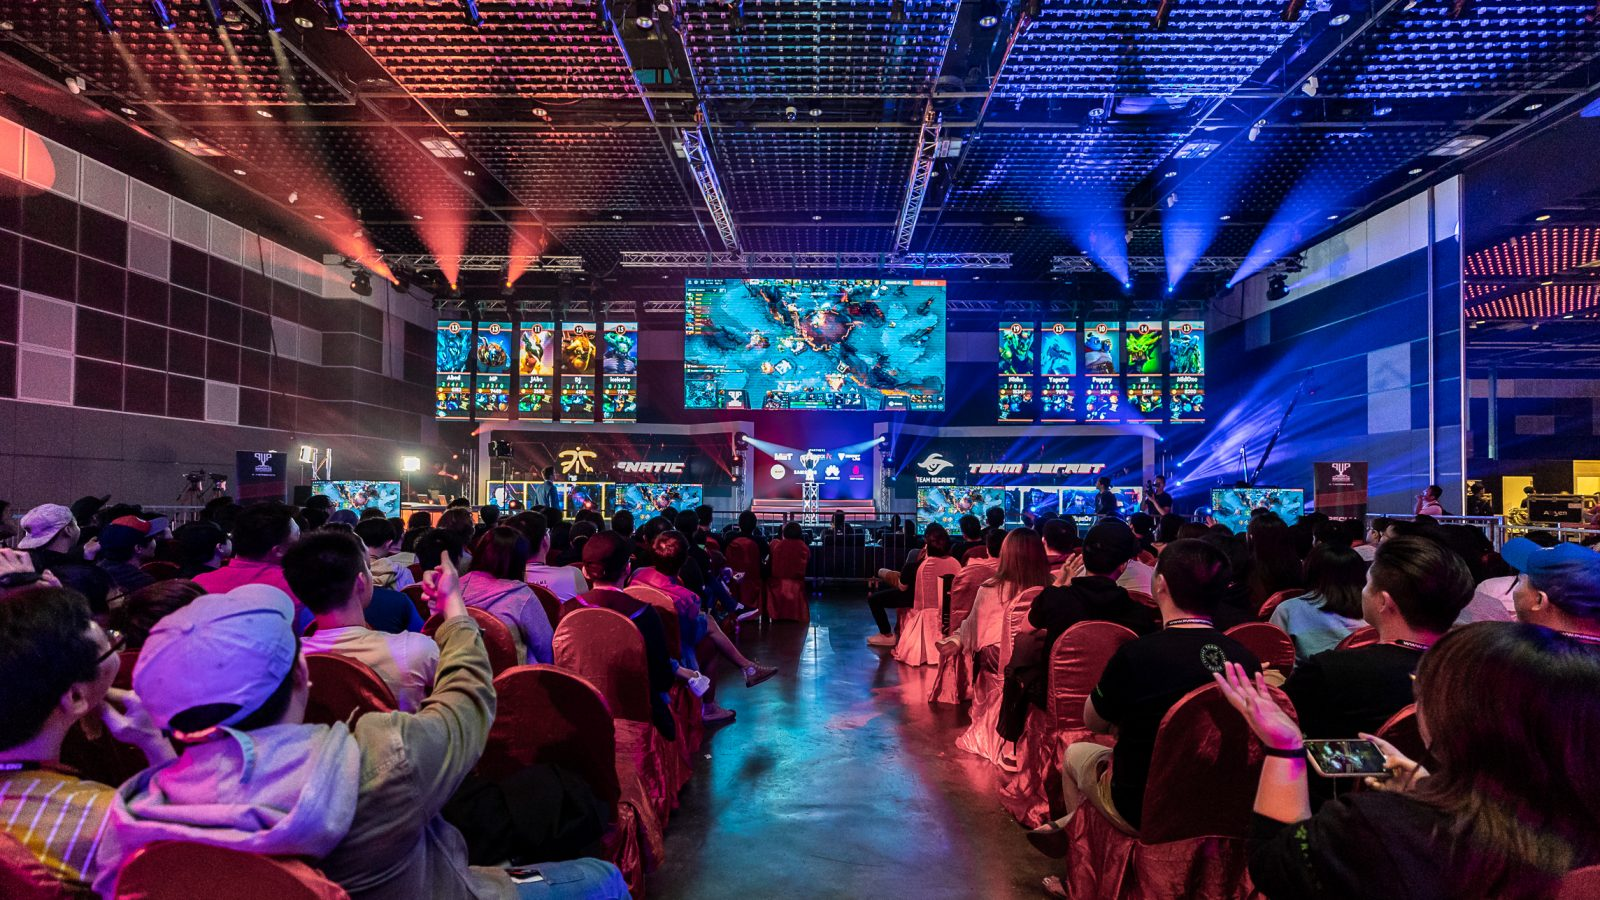 The crowd watches DOTA2 being played at the Grand Finals between Fnatic and Team Secret at Singtel's inaugural PVP Esports Championship